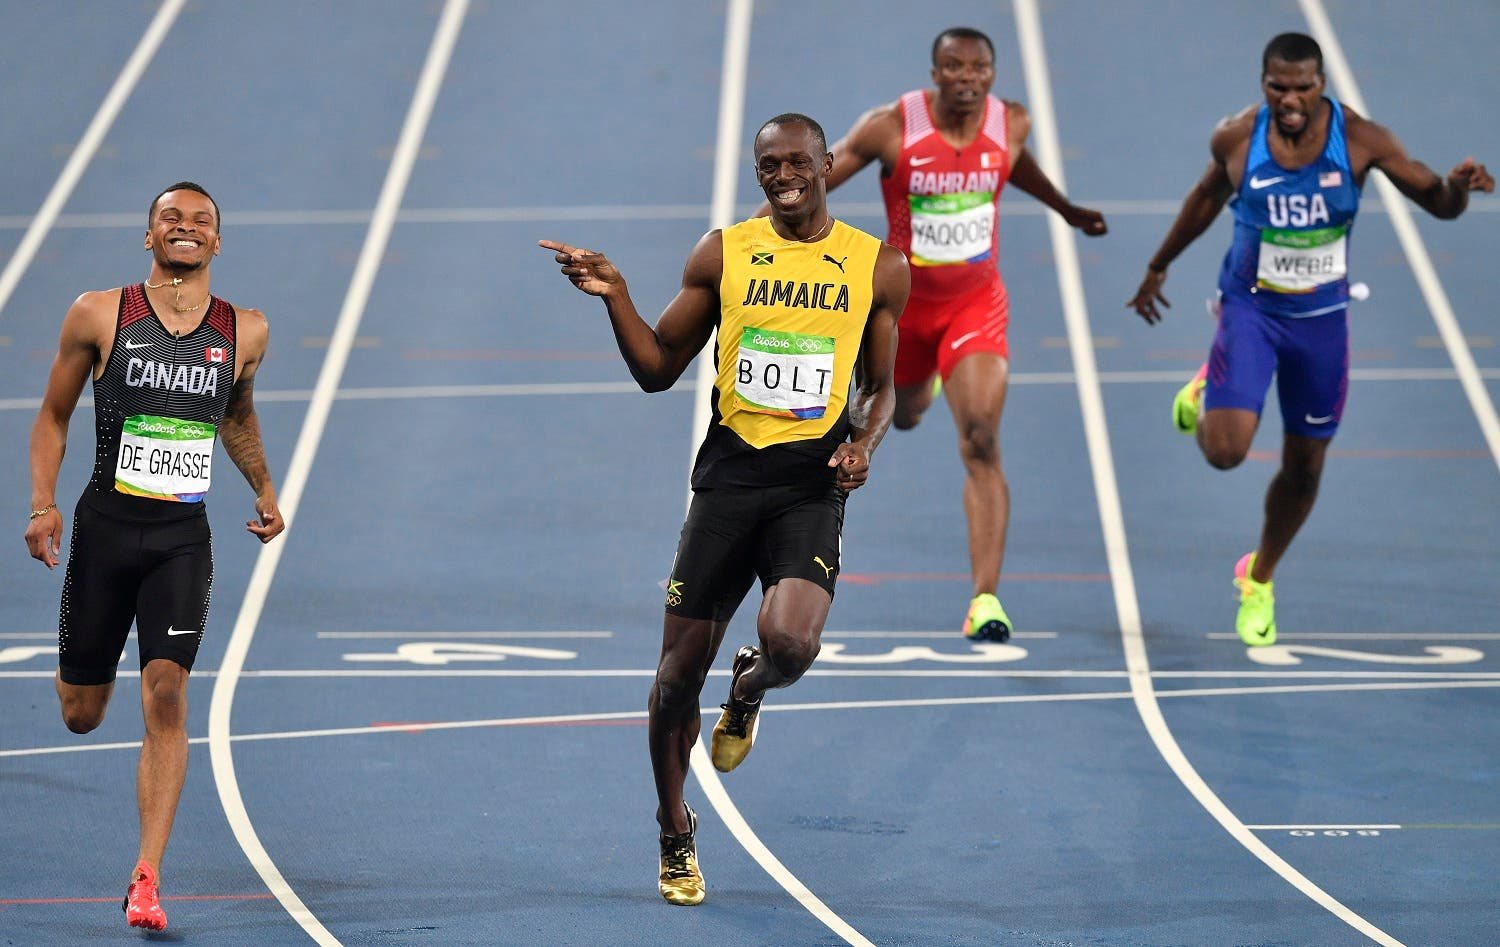 Jamaica's Usain Bolt, center left, and Canada's Andre De Grasse, left, compete in a men's 200-meter semifinal